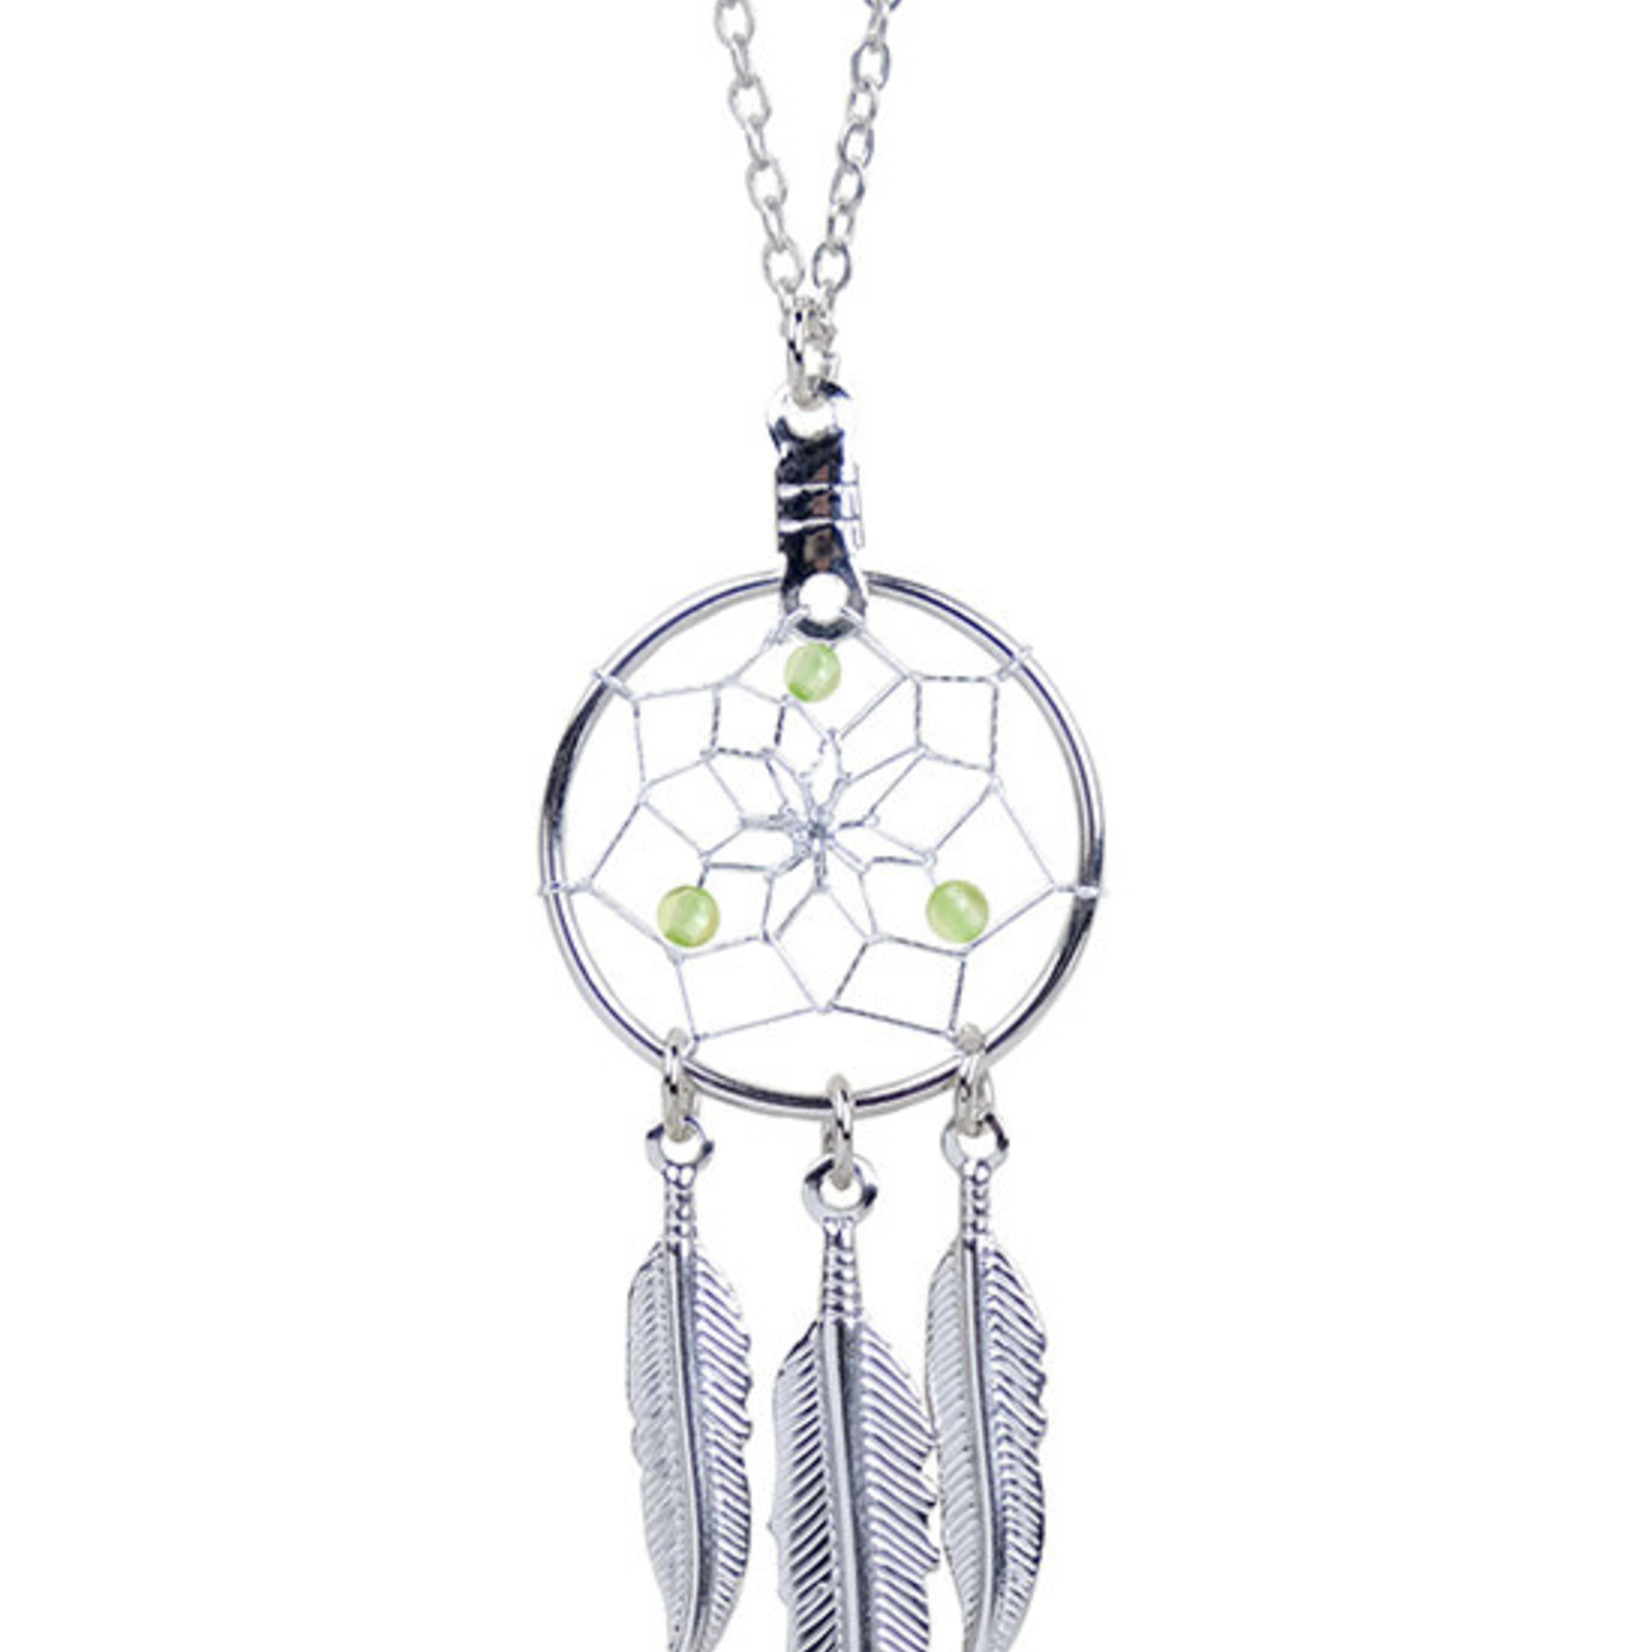 August Dreamcatcher Birthstone Necklace